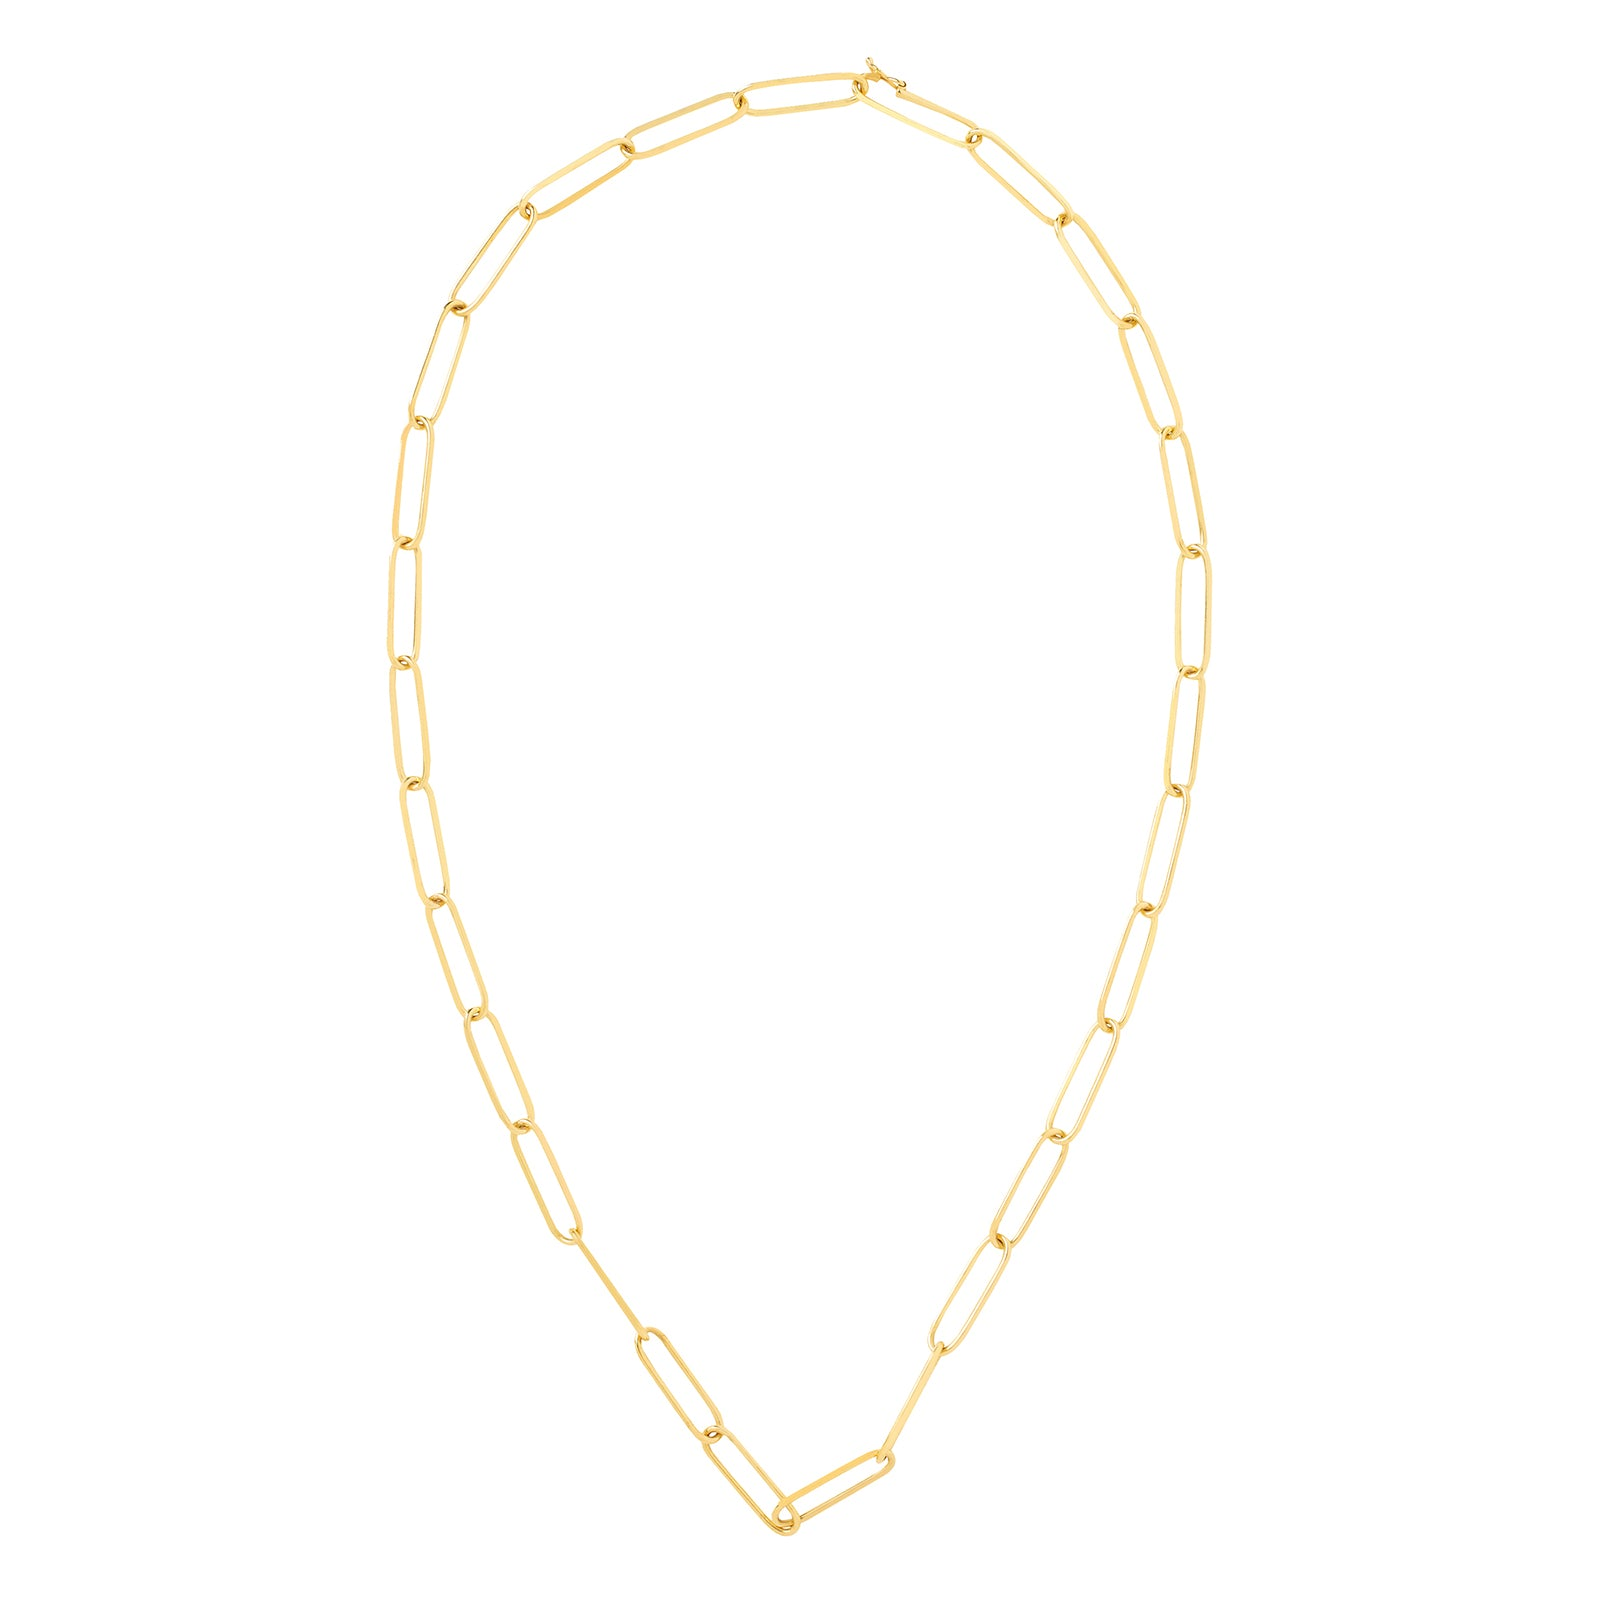 "Jenna Blake Link Chain Necklace - 20"" - Necklaces - Broken English Jewelry"